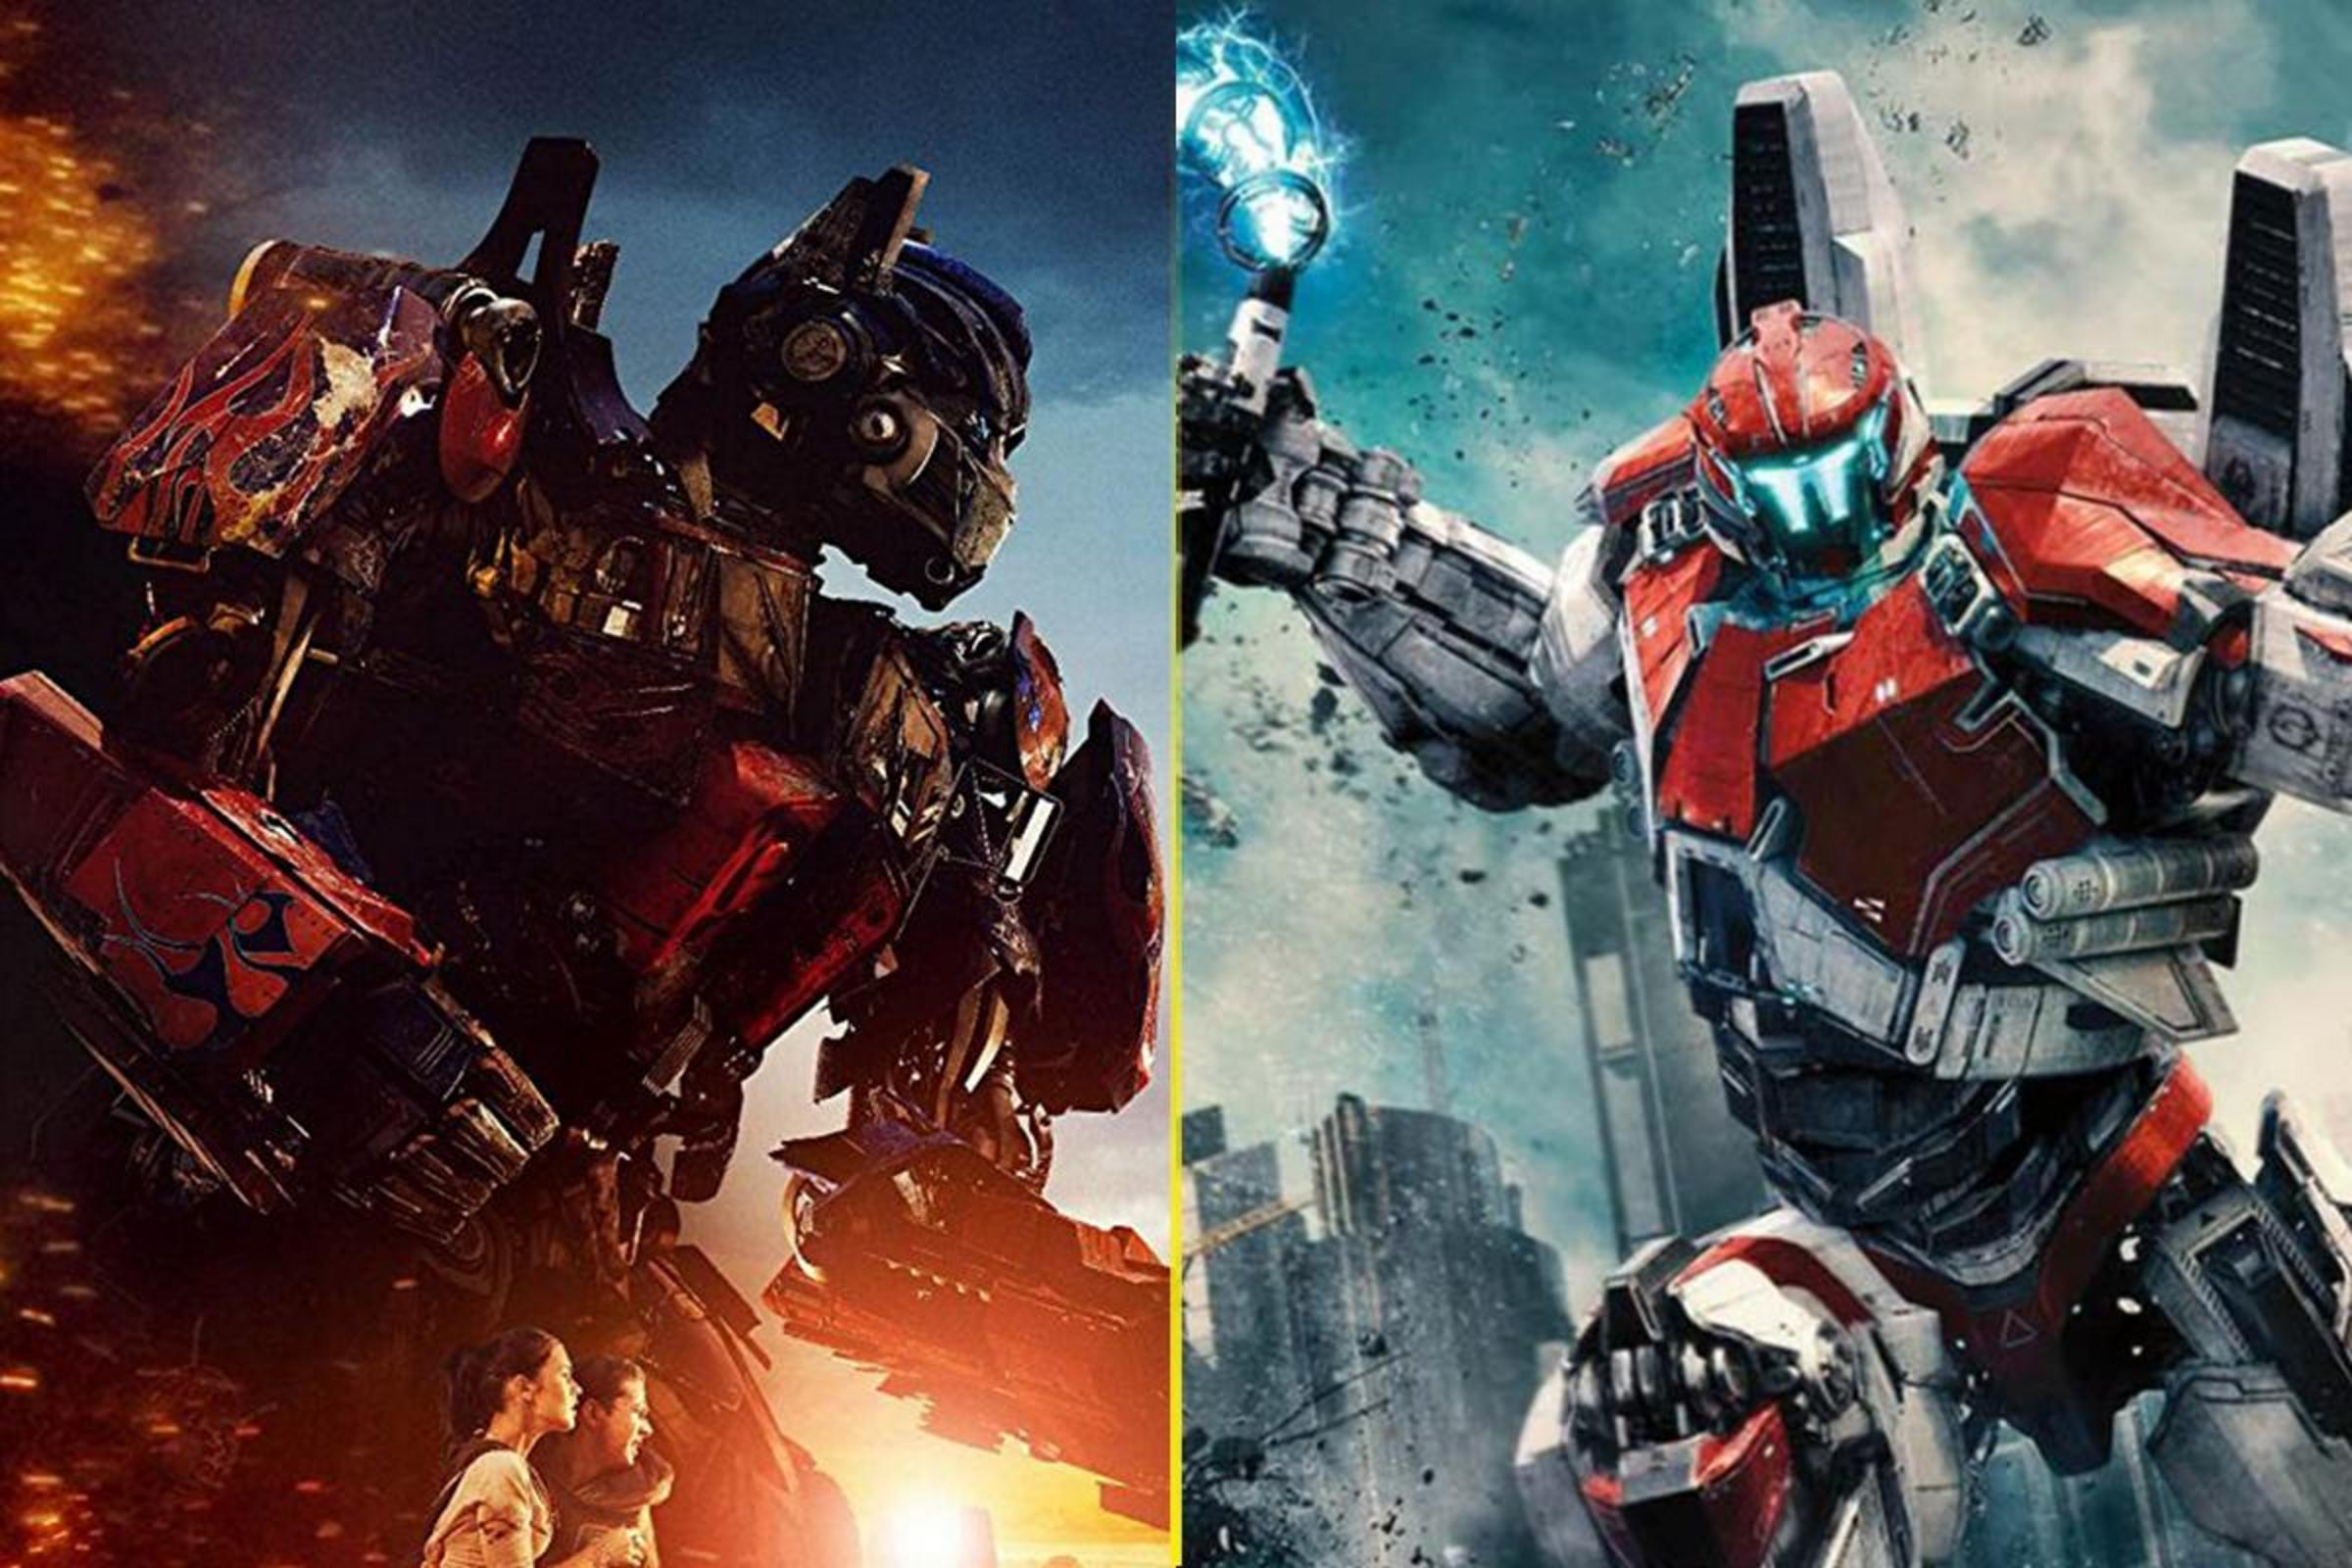 Best Giant Robot Series Transformers Or Pacific Rim The Tylt